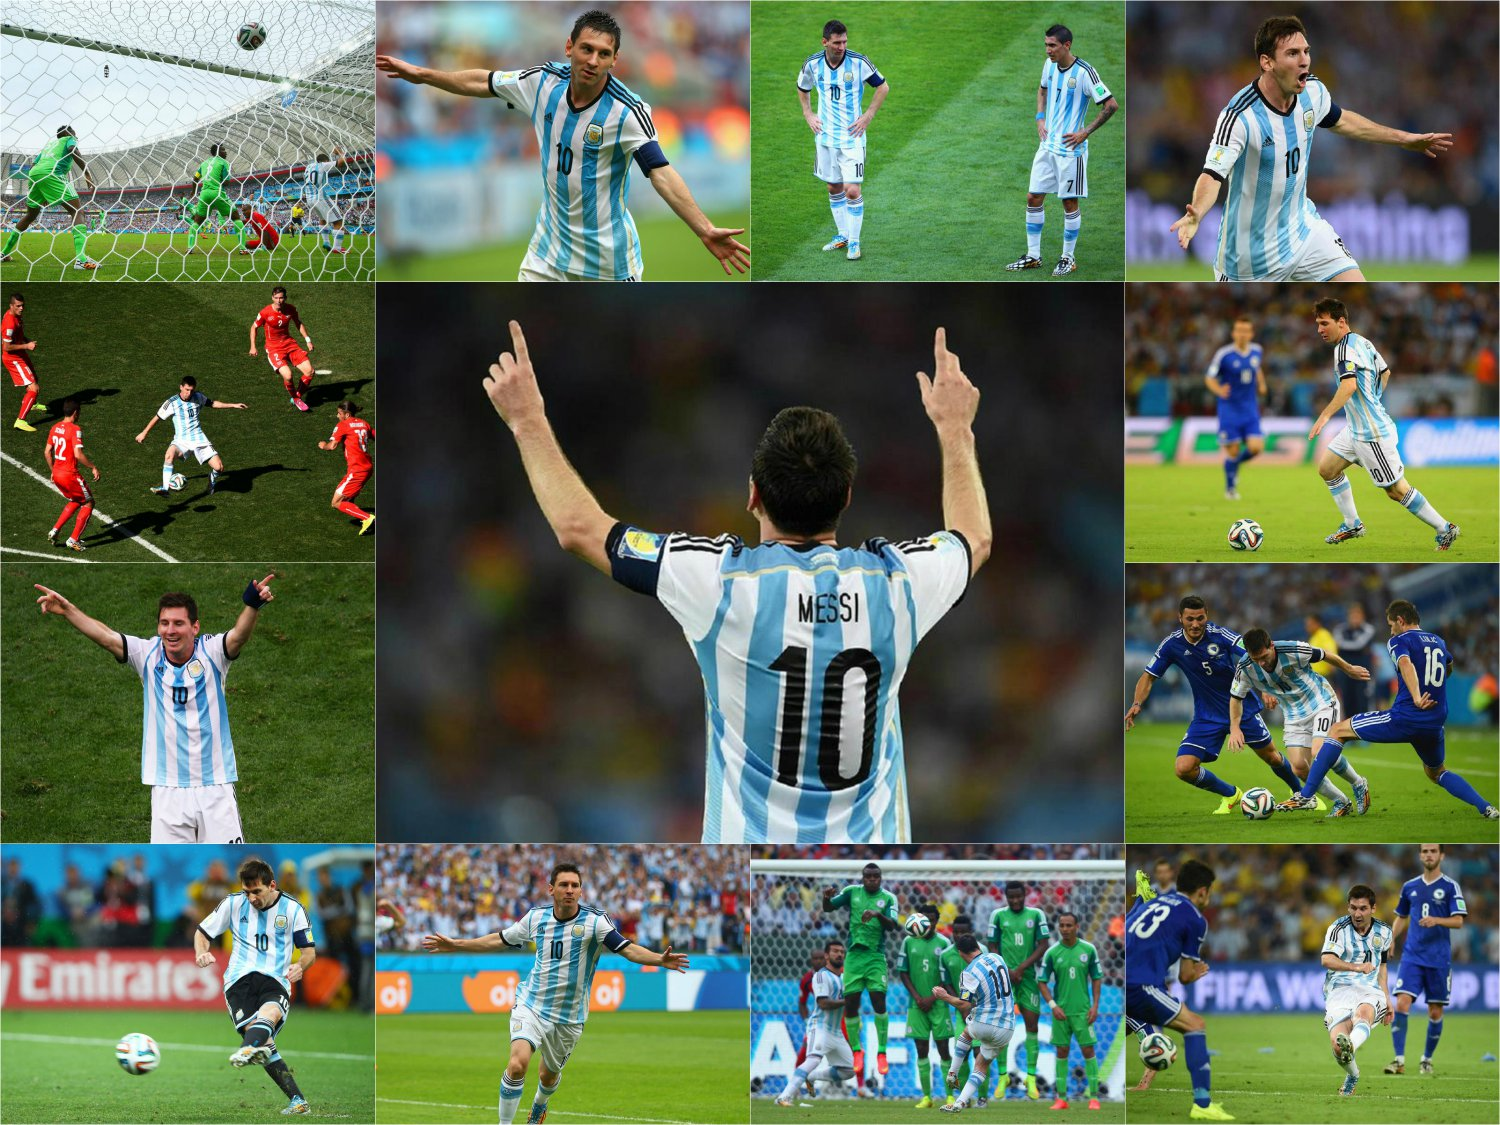 12 x 8 Photo - Football - FIFA World Cup 2014 - Lionel Messi Collage